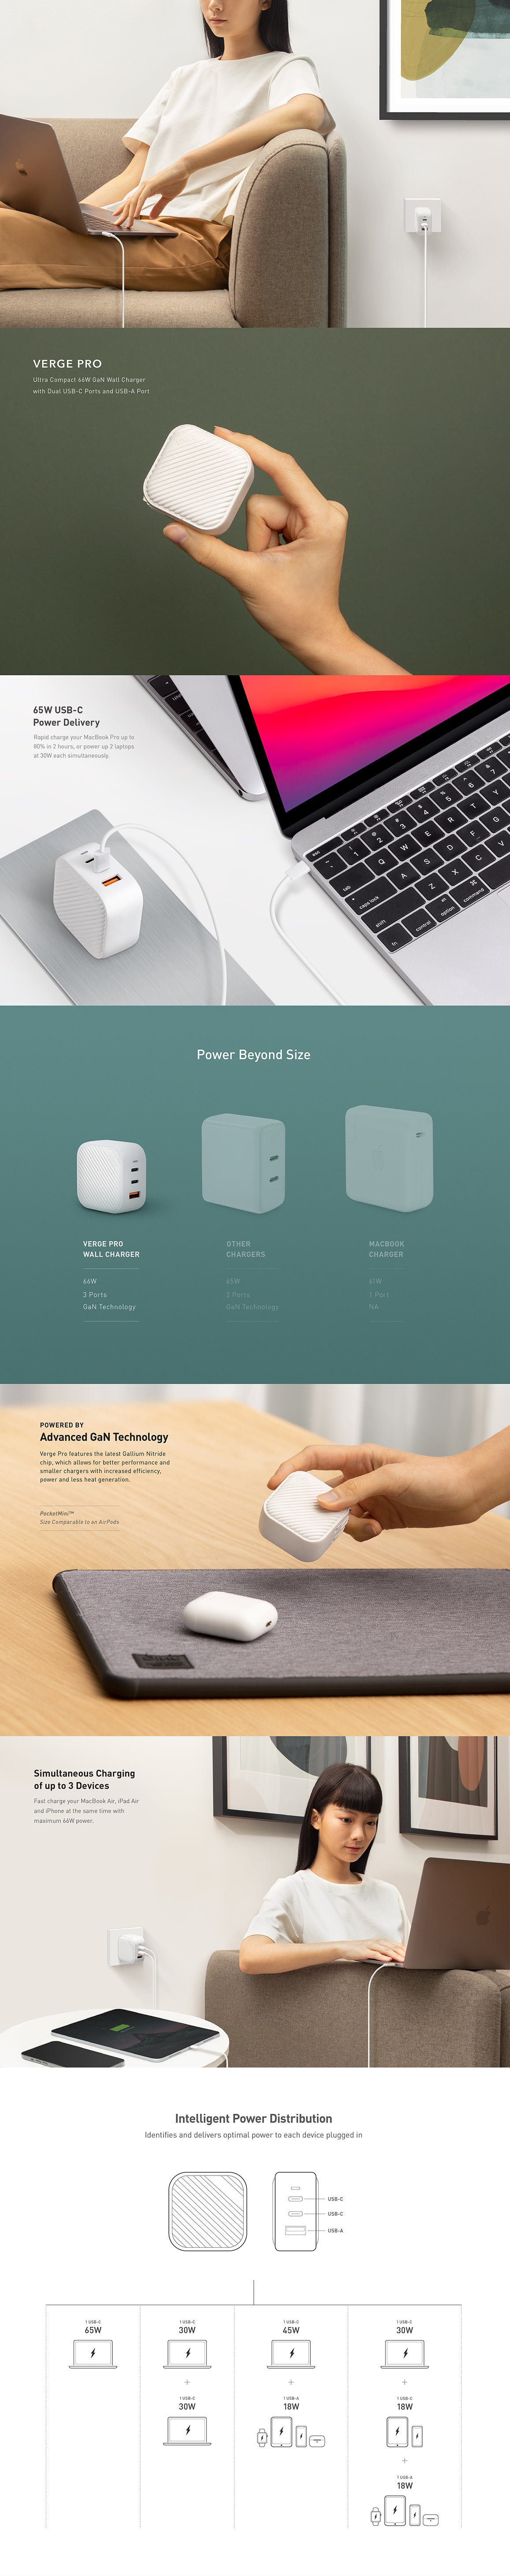 UNIQ Verge Pro 66W 3-Port GaN Wall Charger With Dual USB-C PD Ports and USB-A Port